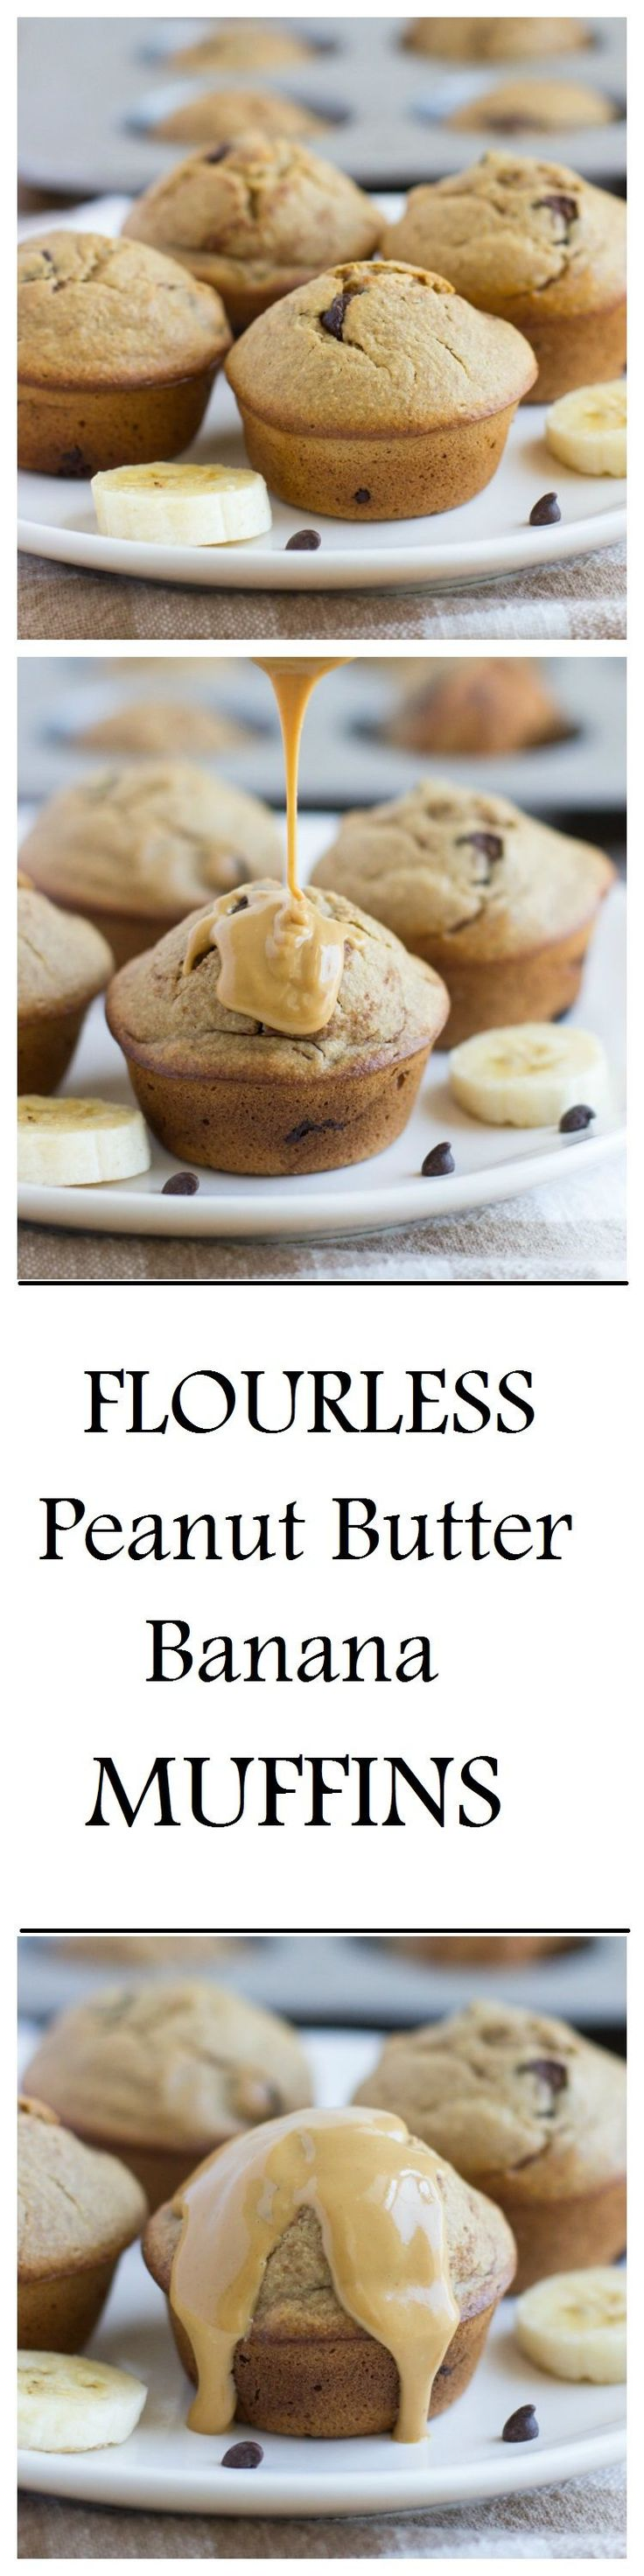 Flourless peanut butter banana muffins that are made without dairy, gluten, oil or refined sugar. One muffin has as much protein as an egg! So moist and delicious, you would never guess that they're healthy! THESE MUFFINS. Where do I even start? They're basically a dream come true. They have the BEST texture and the …